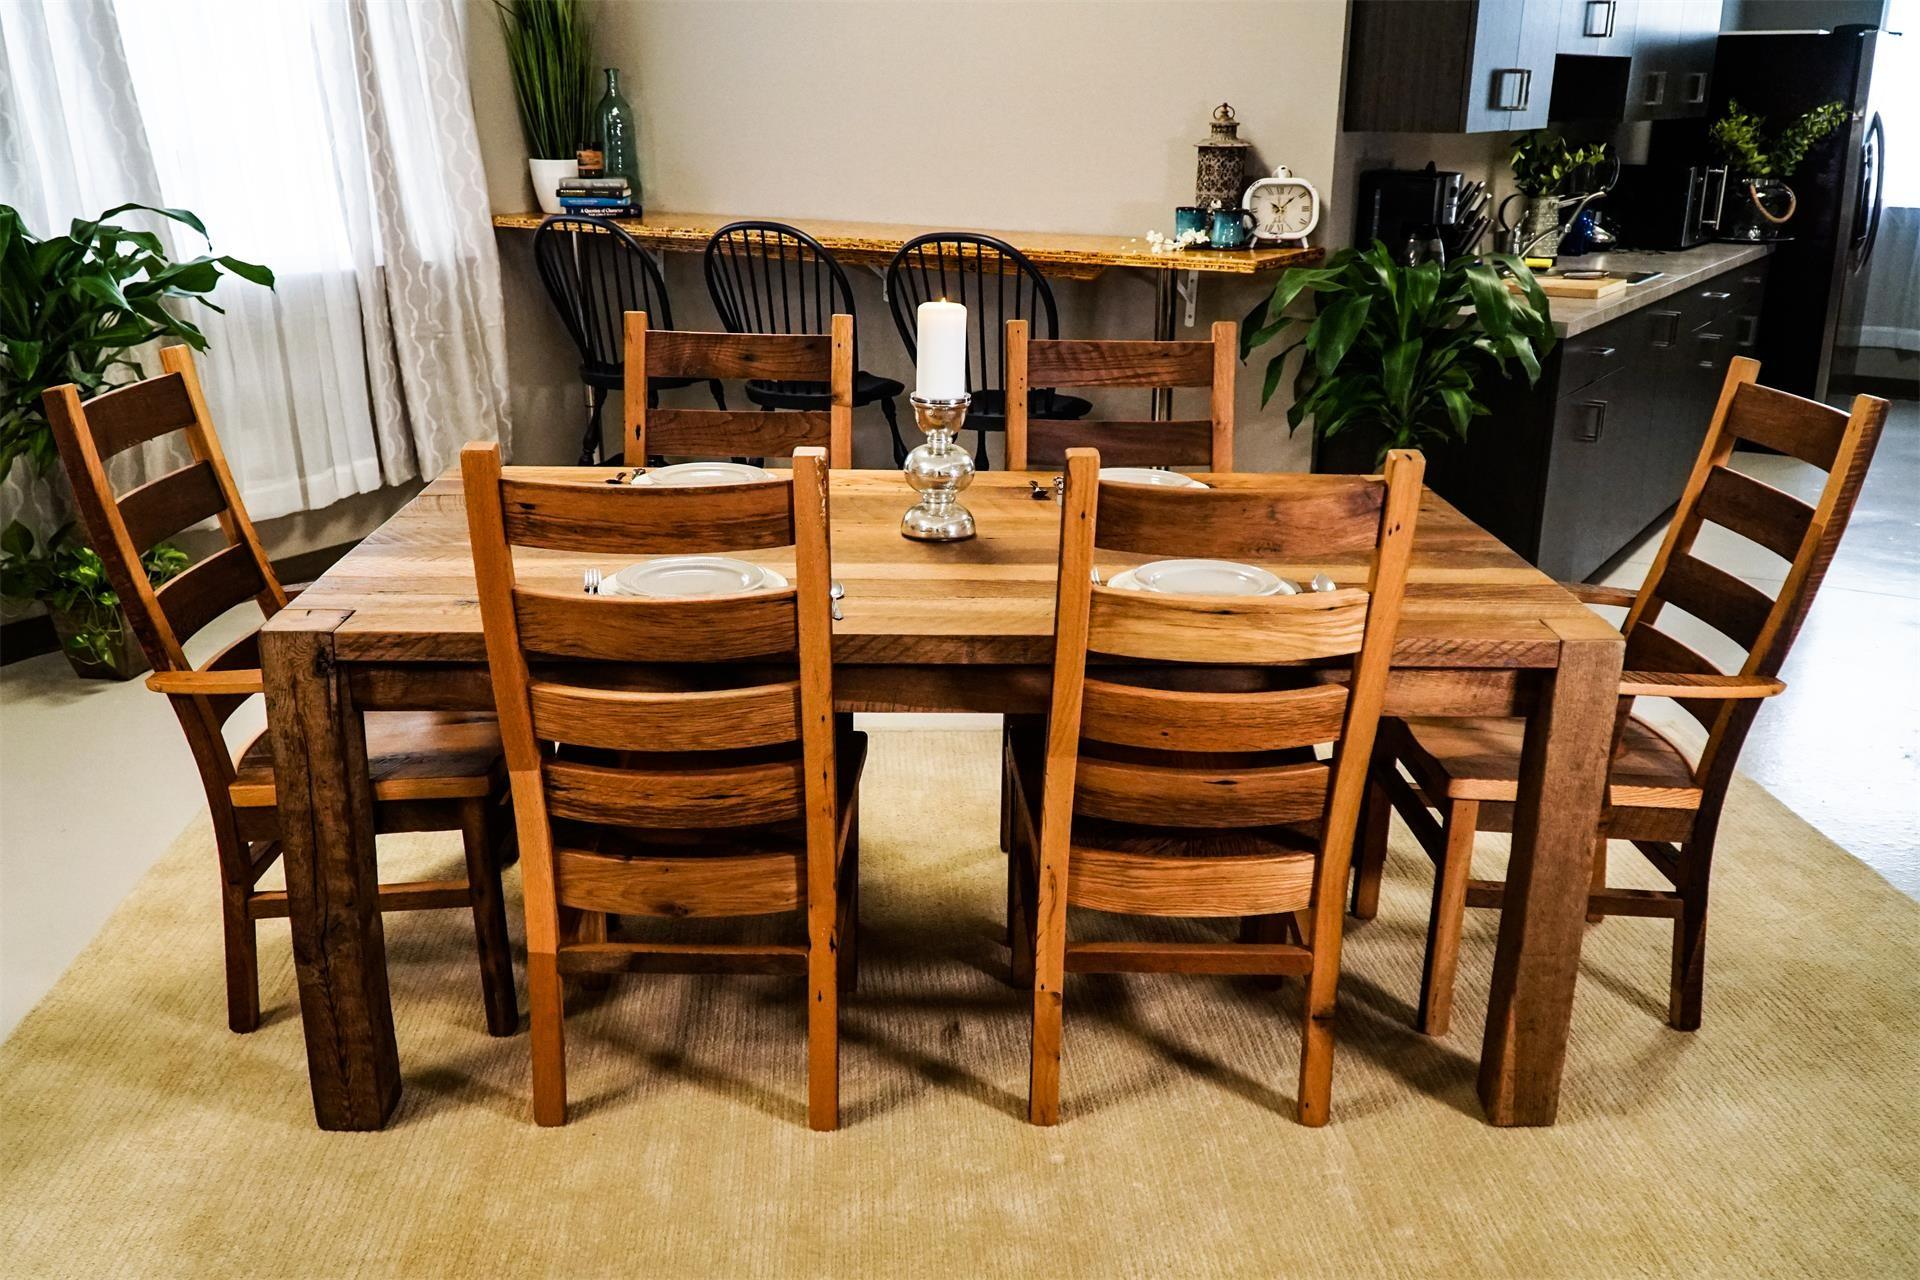 Reclaimed Dining Tables Sale Optimizing Home Decor